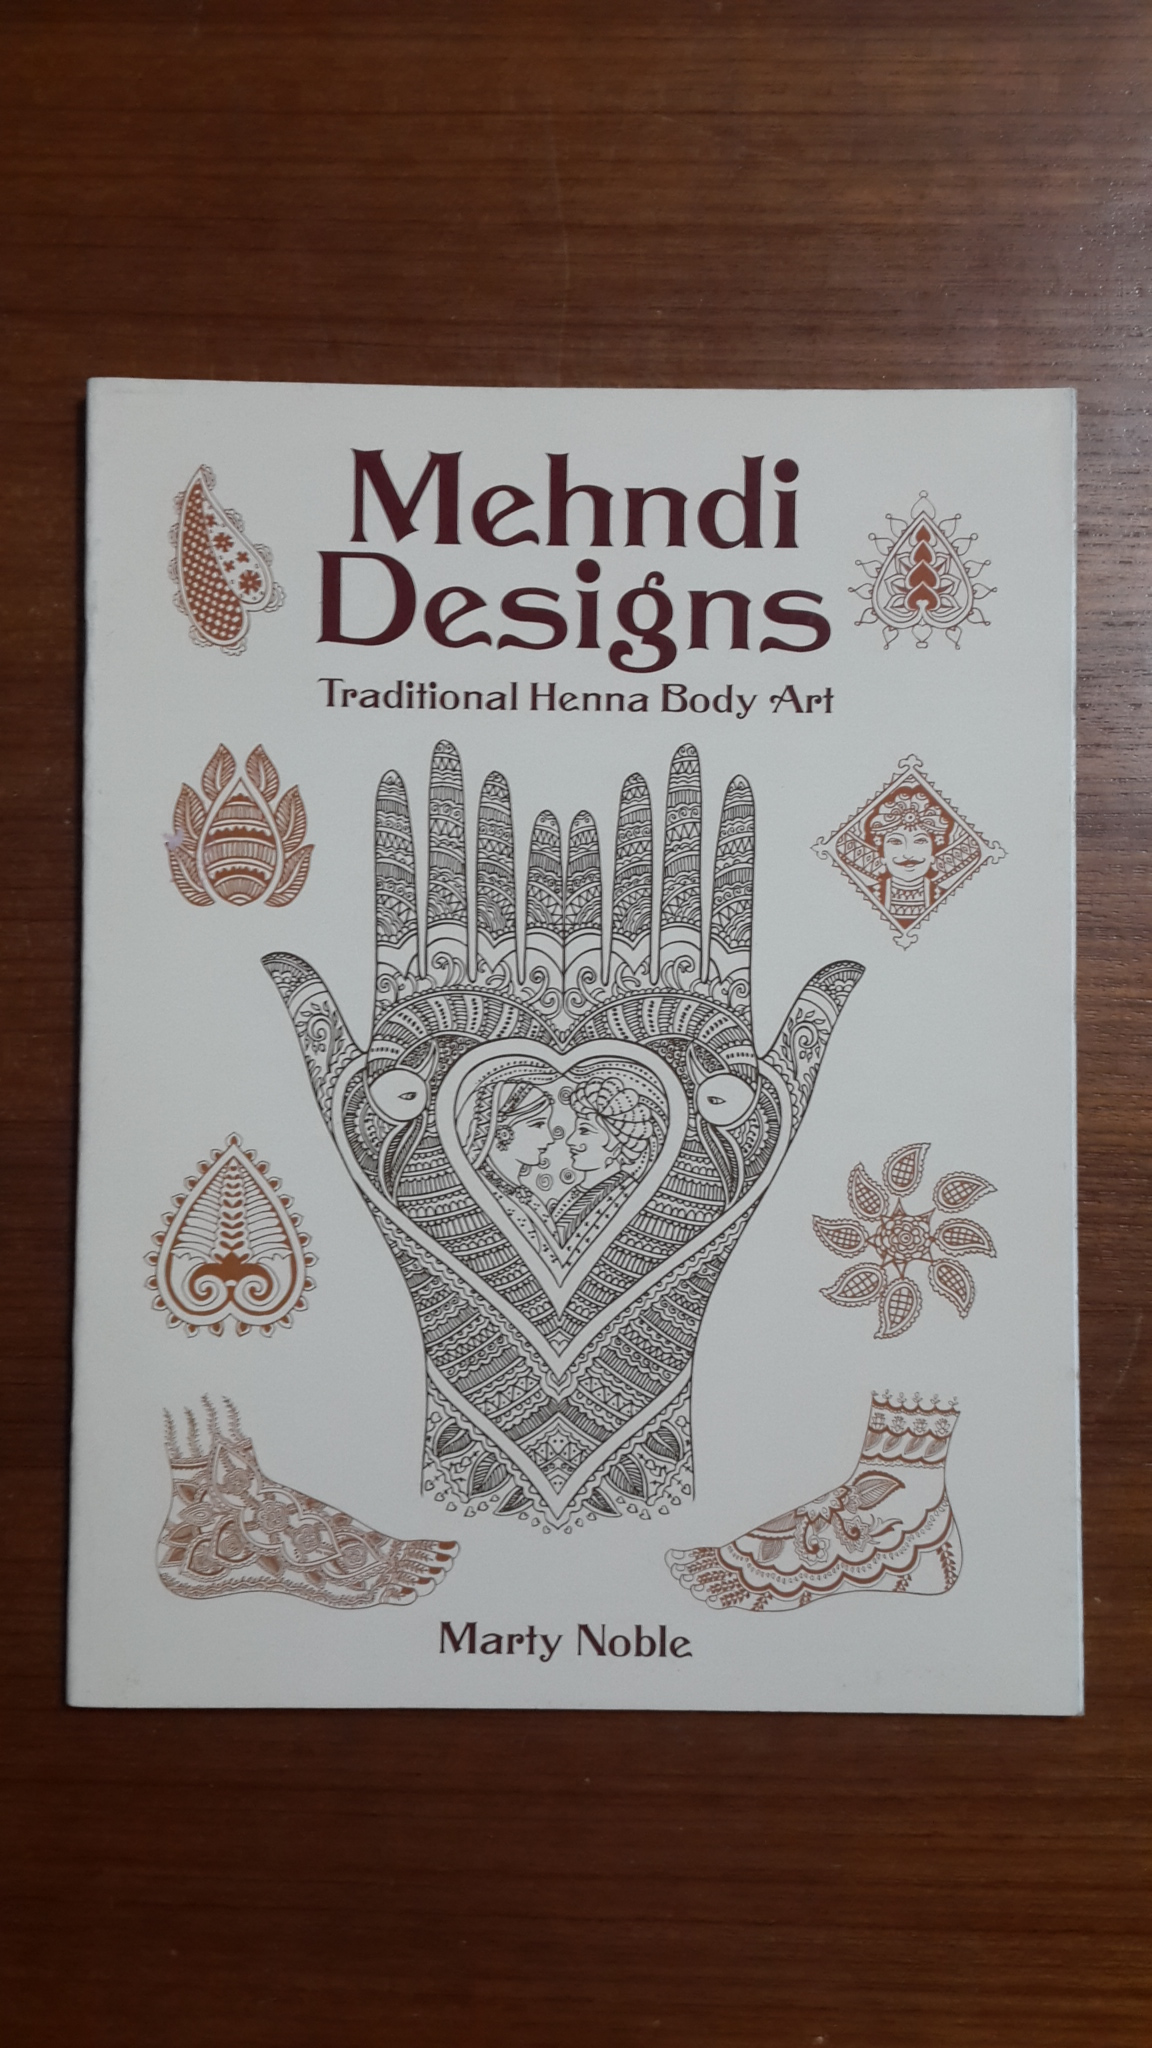 Mehndi Designs : Traditional Henna Body Art / Marty Nodle